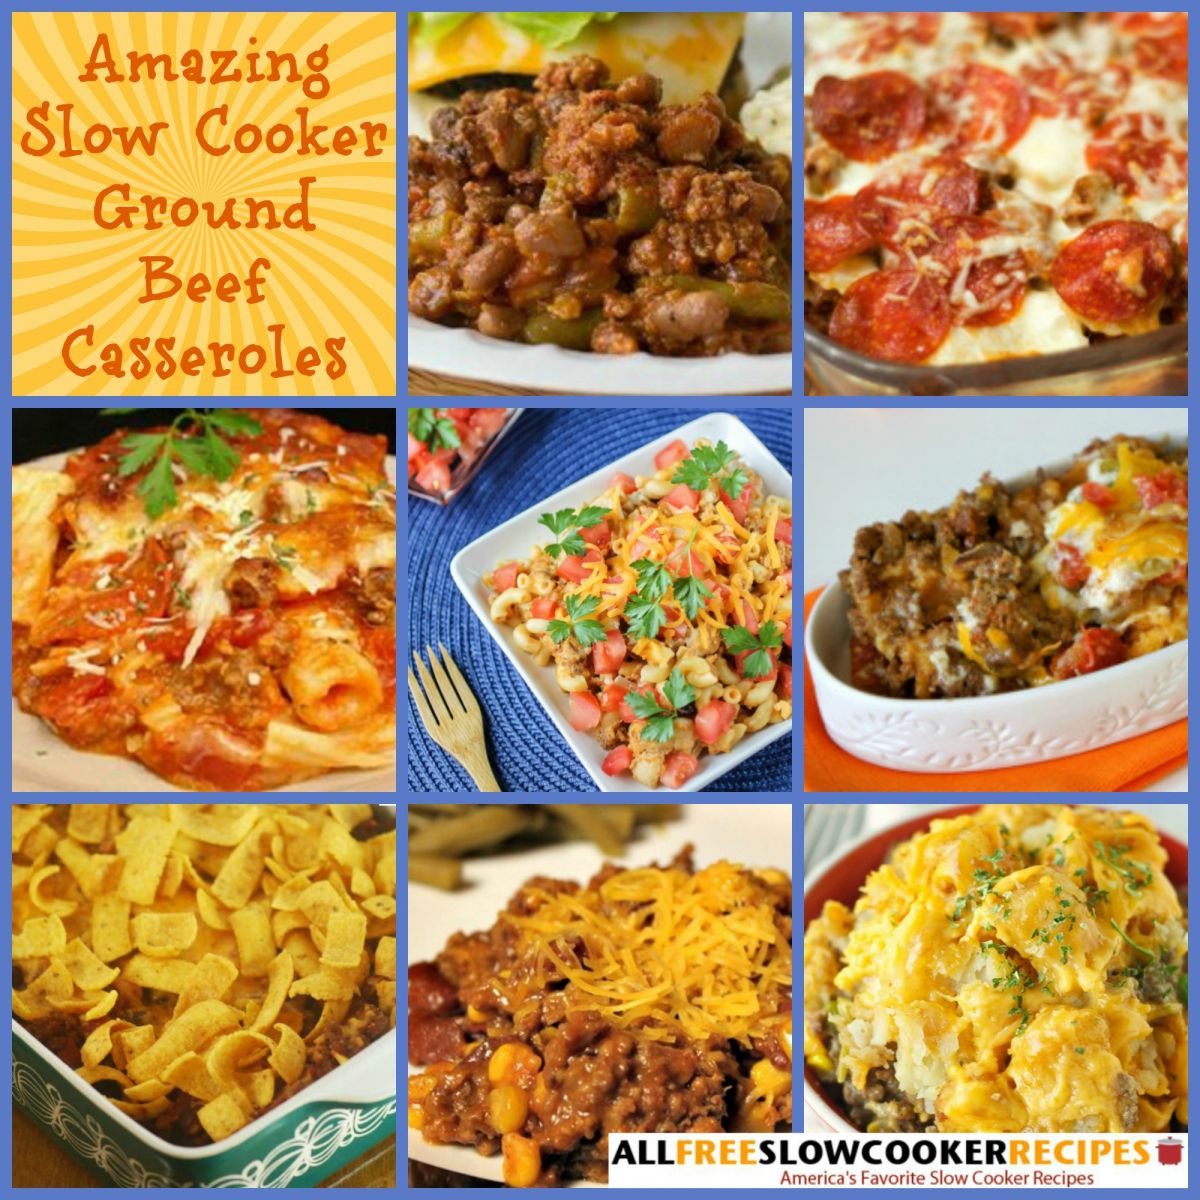 Slow Cooker Ground Beef Recipes: 6 Slow Cooker Ground Beef Casseroles